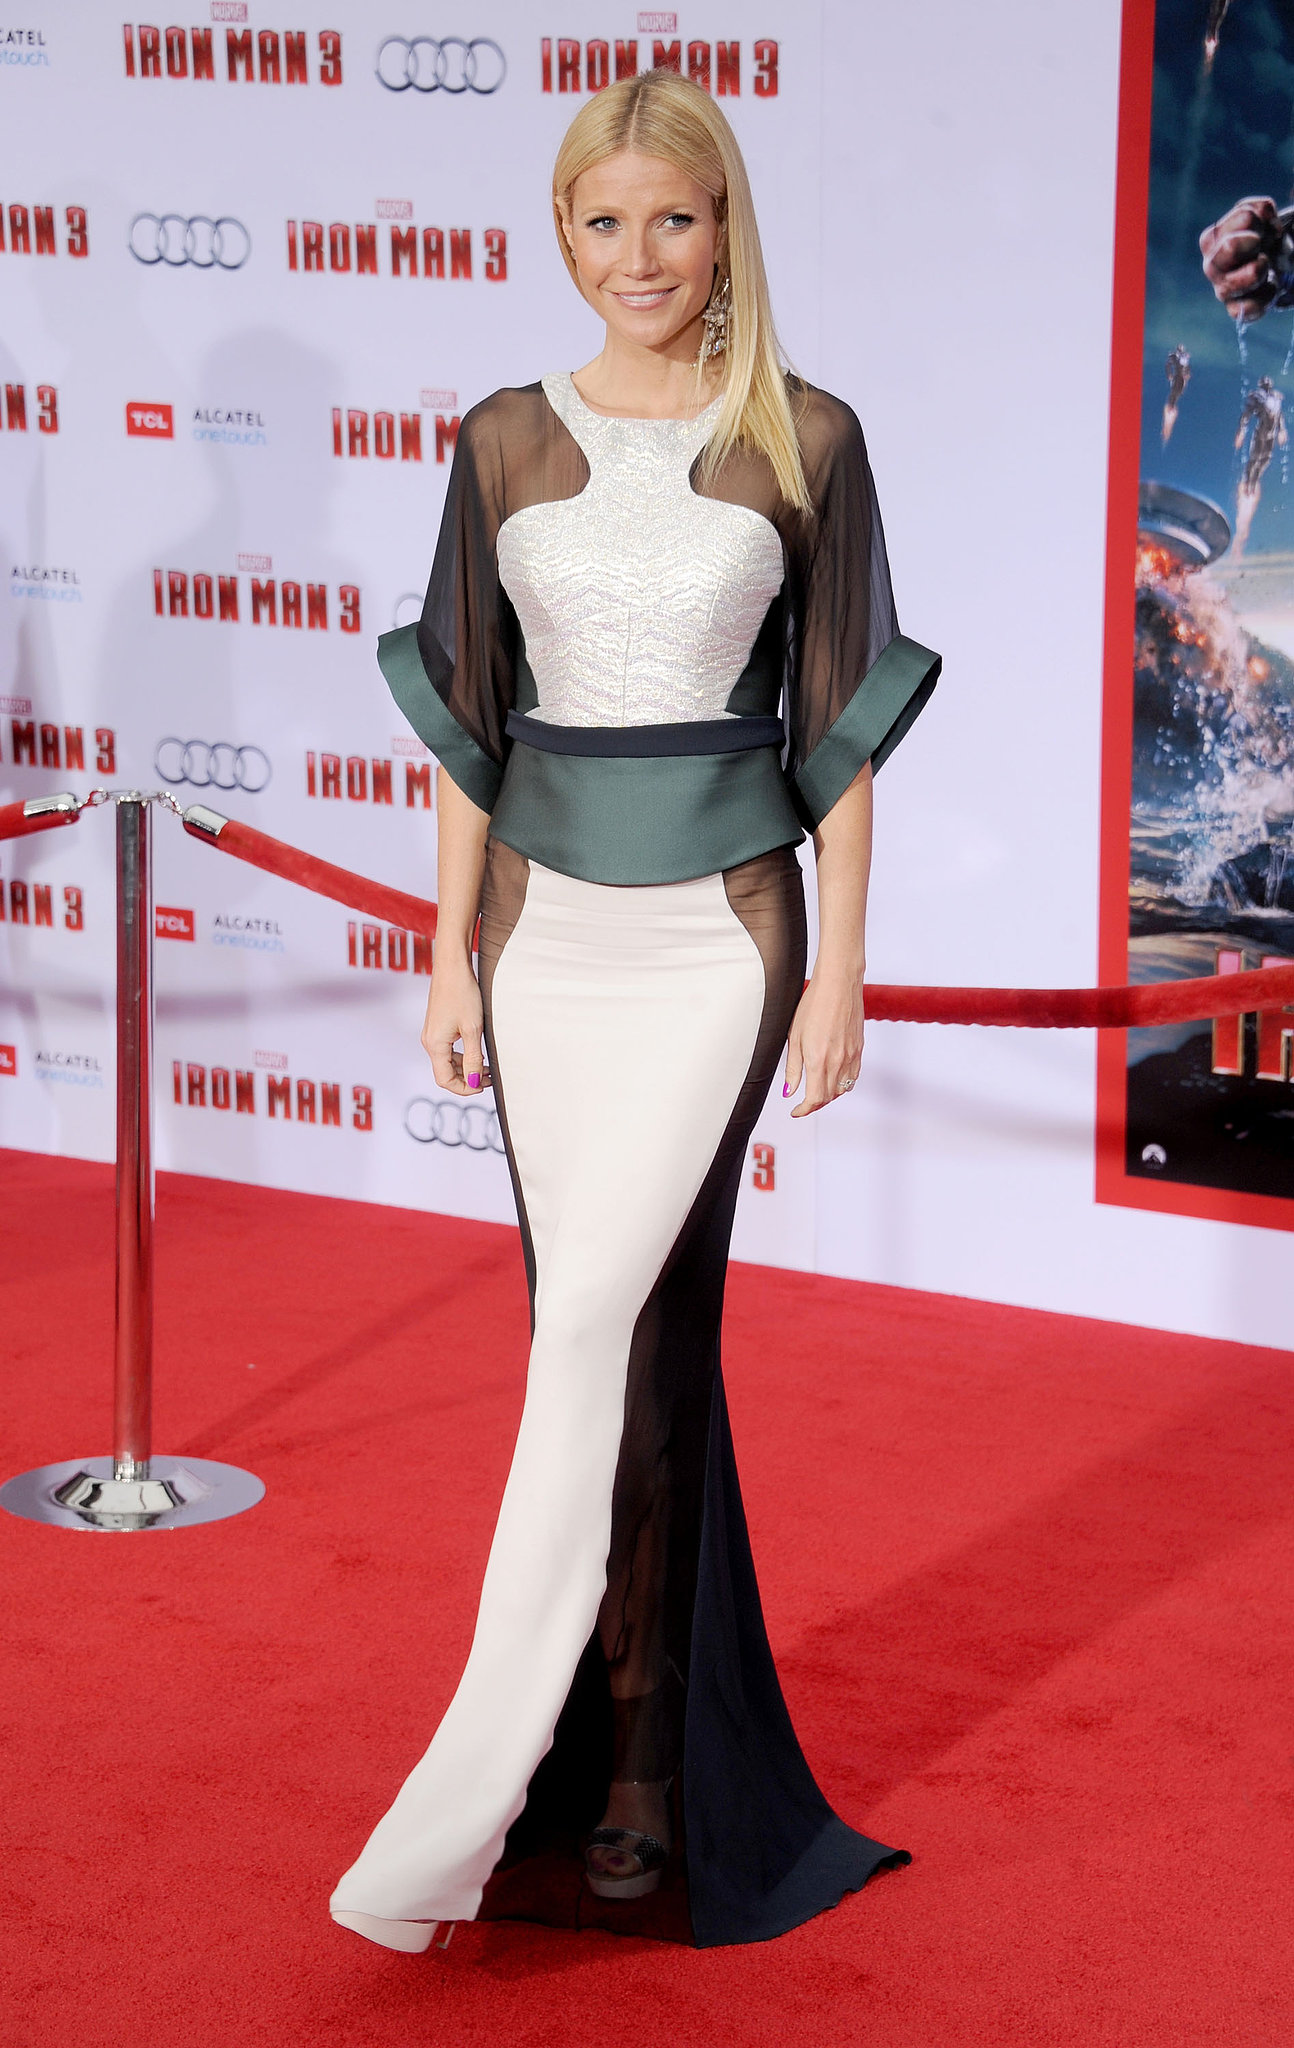 Gwyneth Paltrow wore Fall 2013 Antonio Berardi at the Iron Man 3 premiere in Los Angeles.